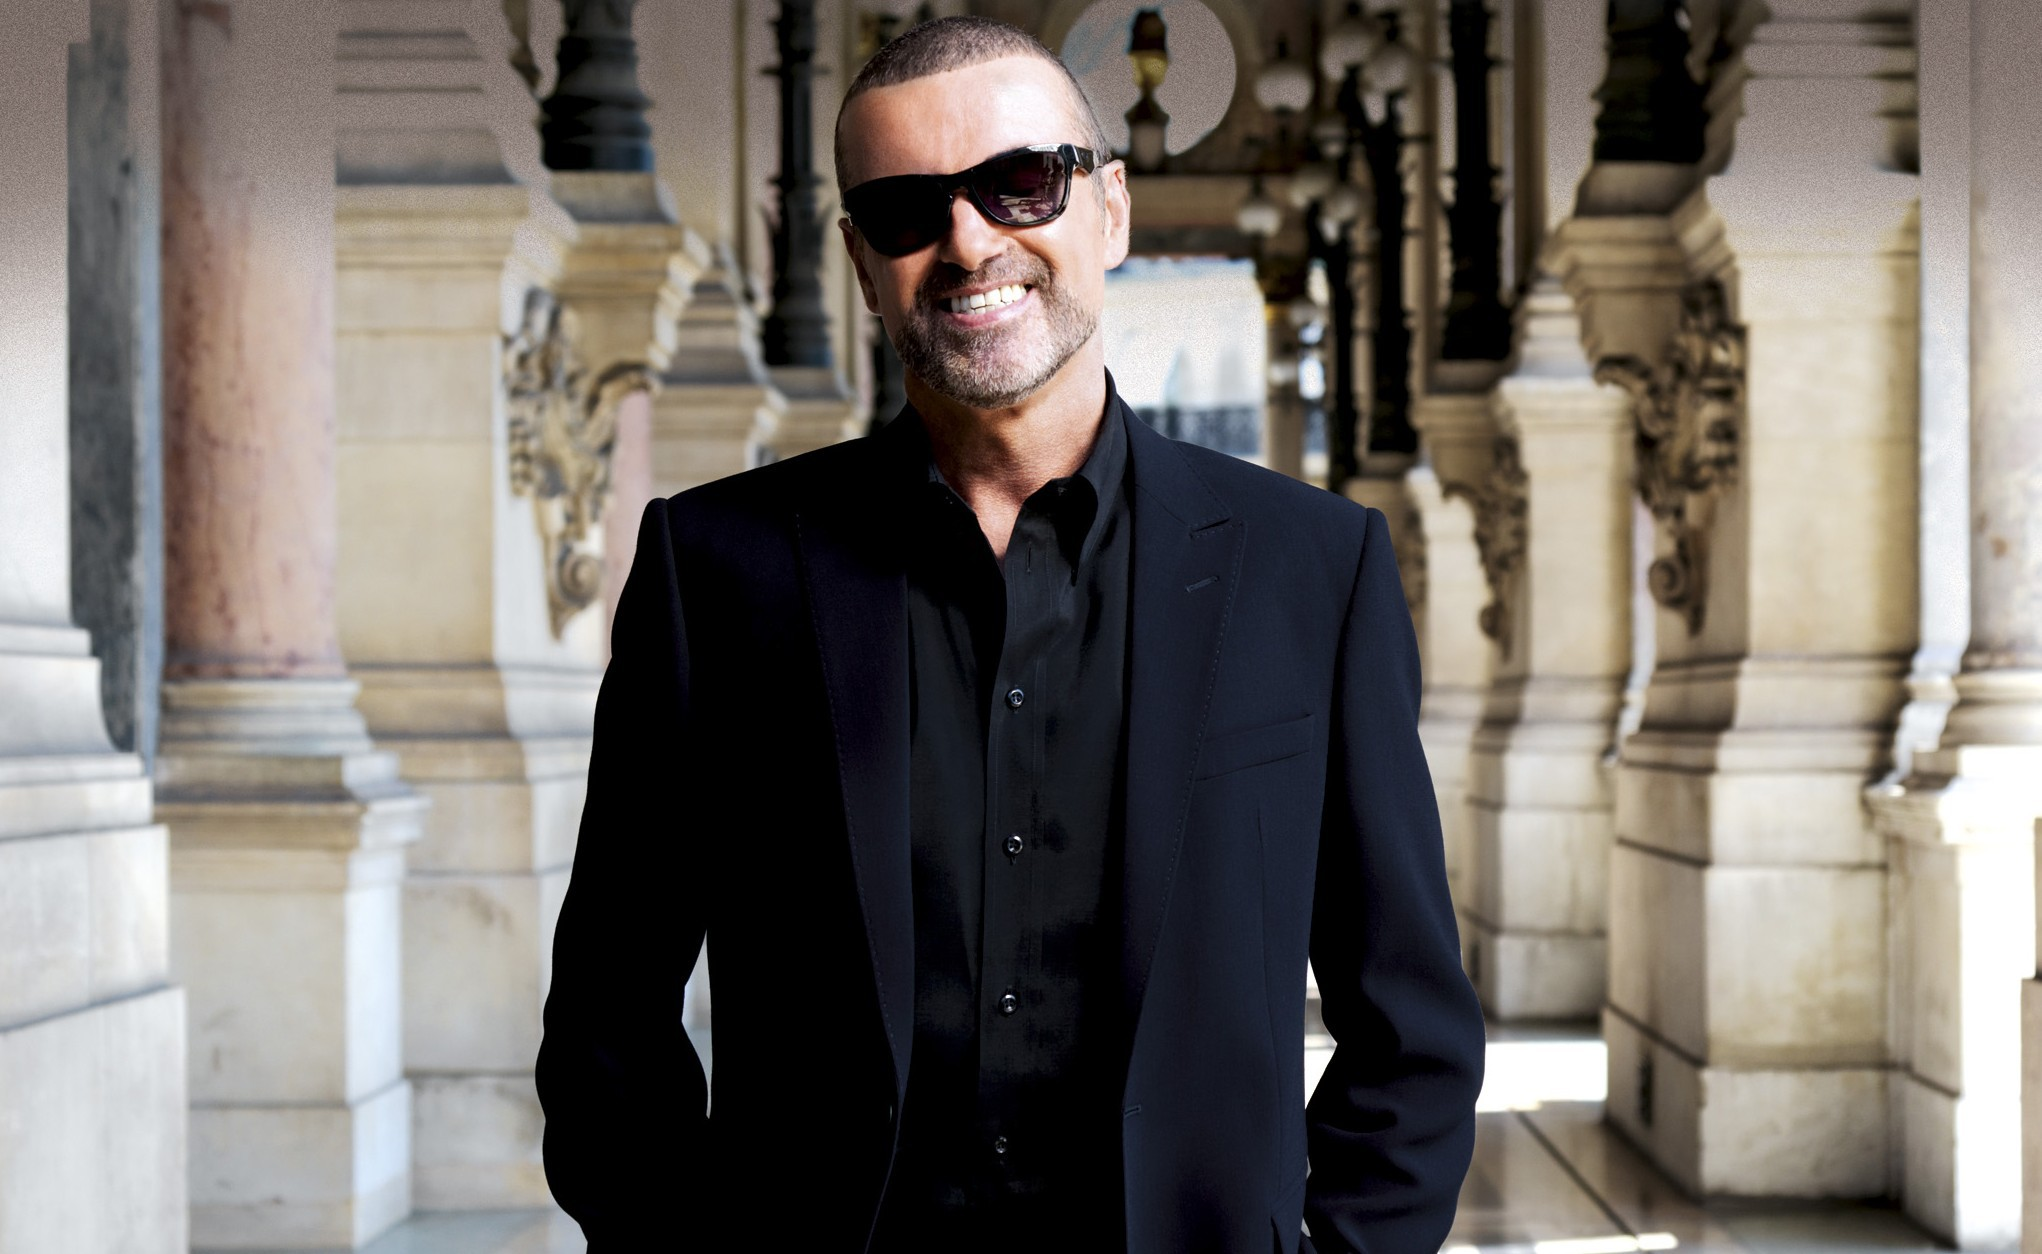 george michael smile wallpaper 61647